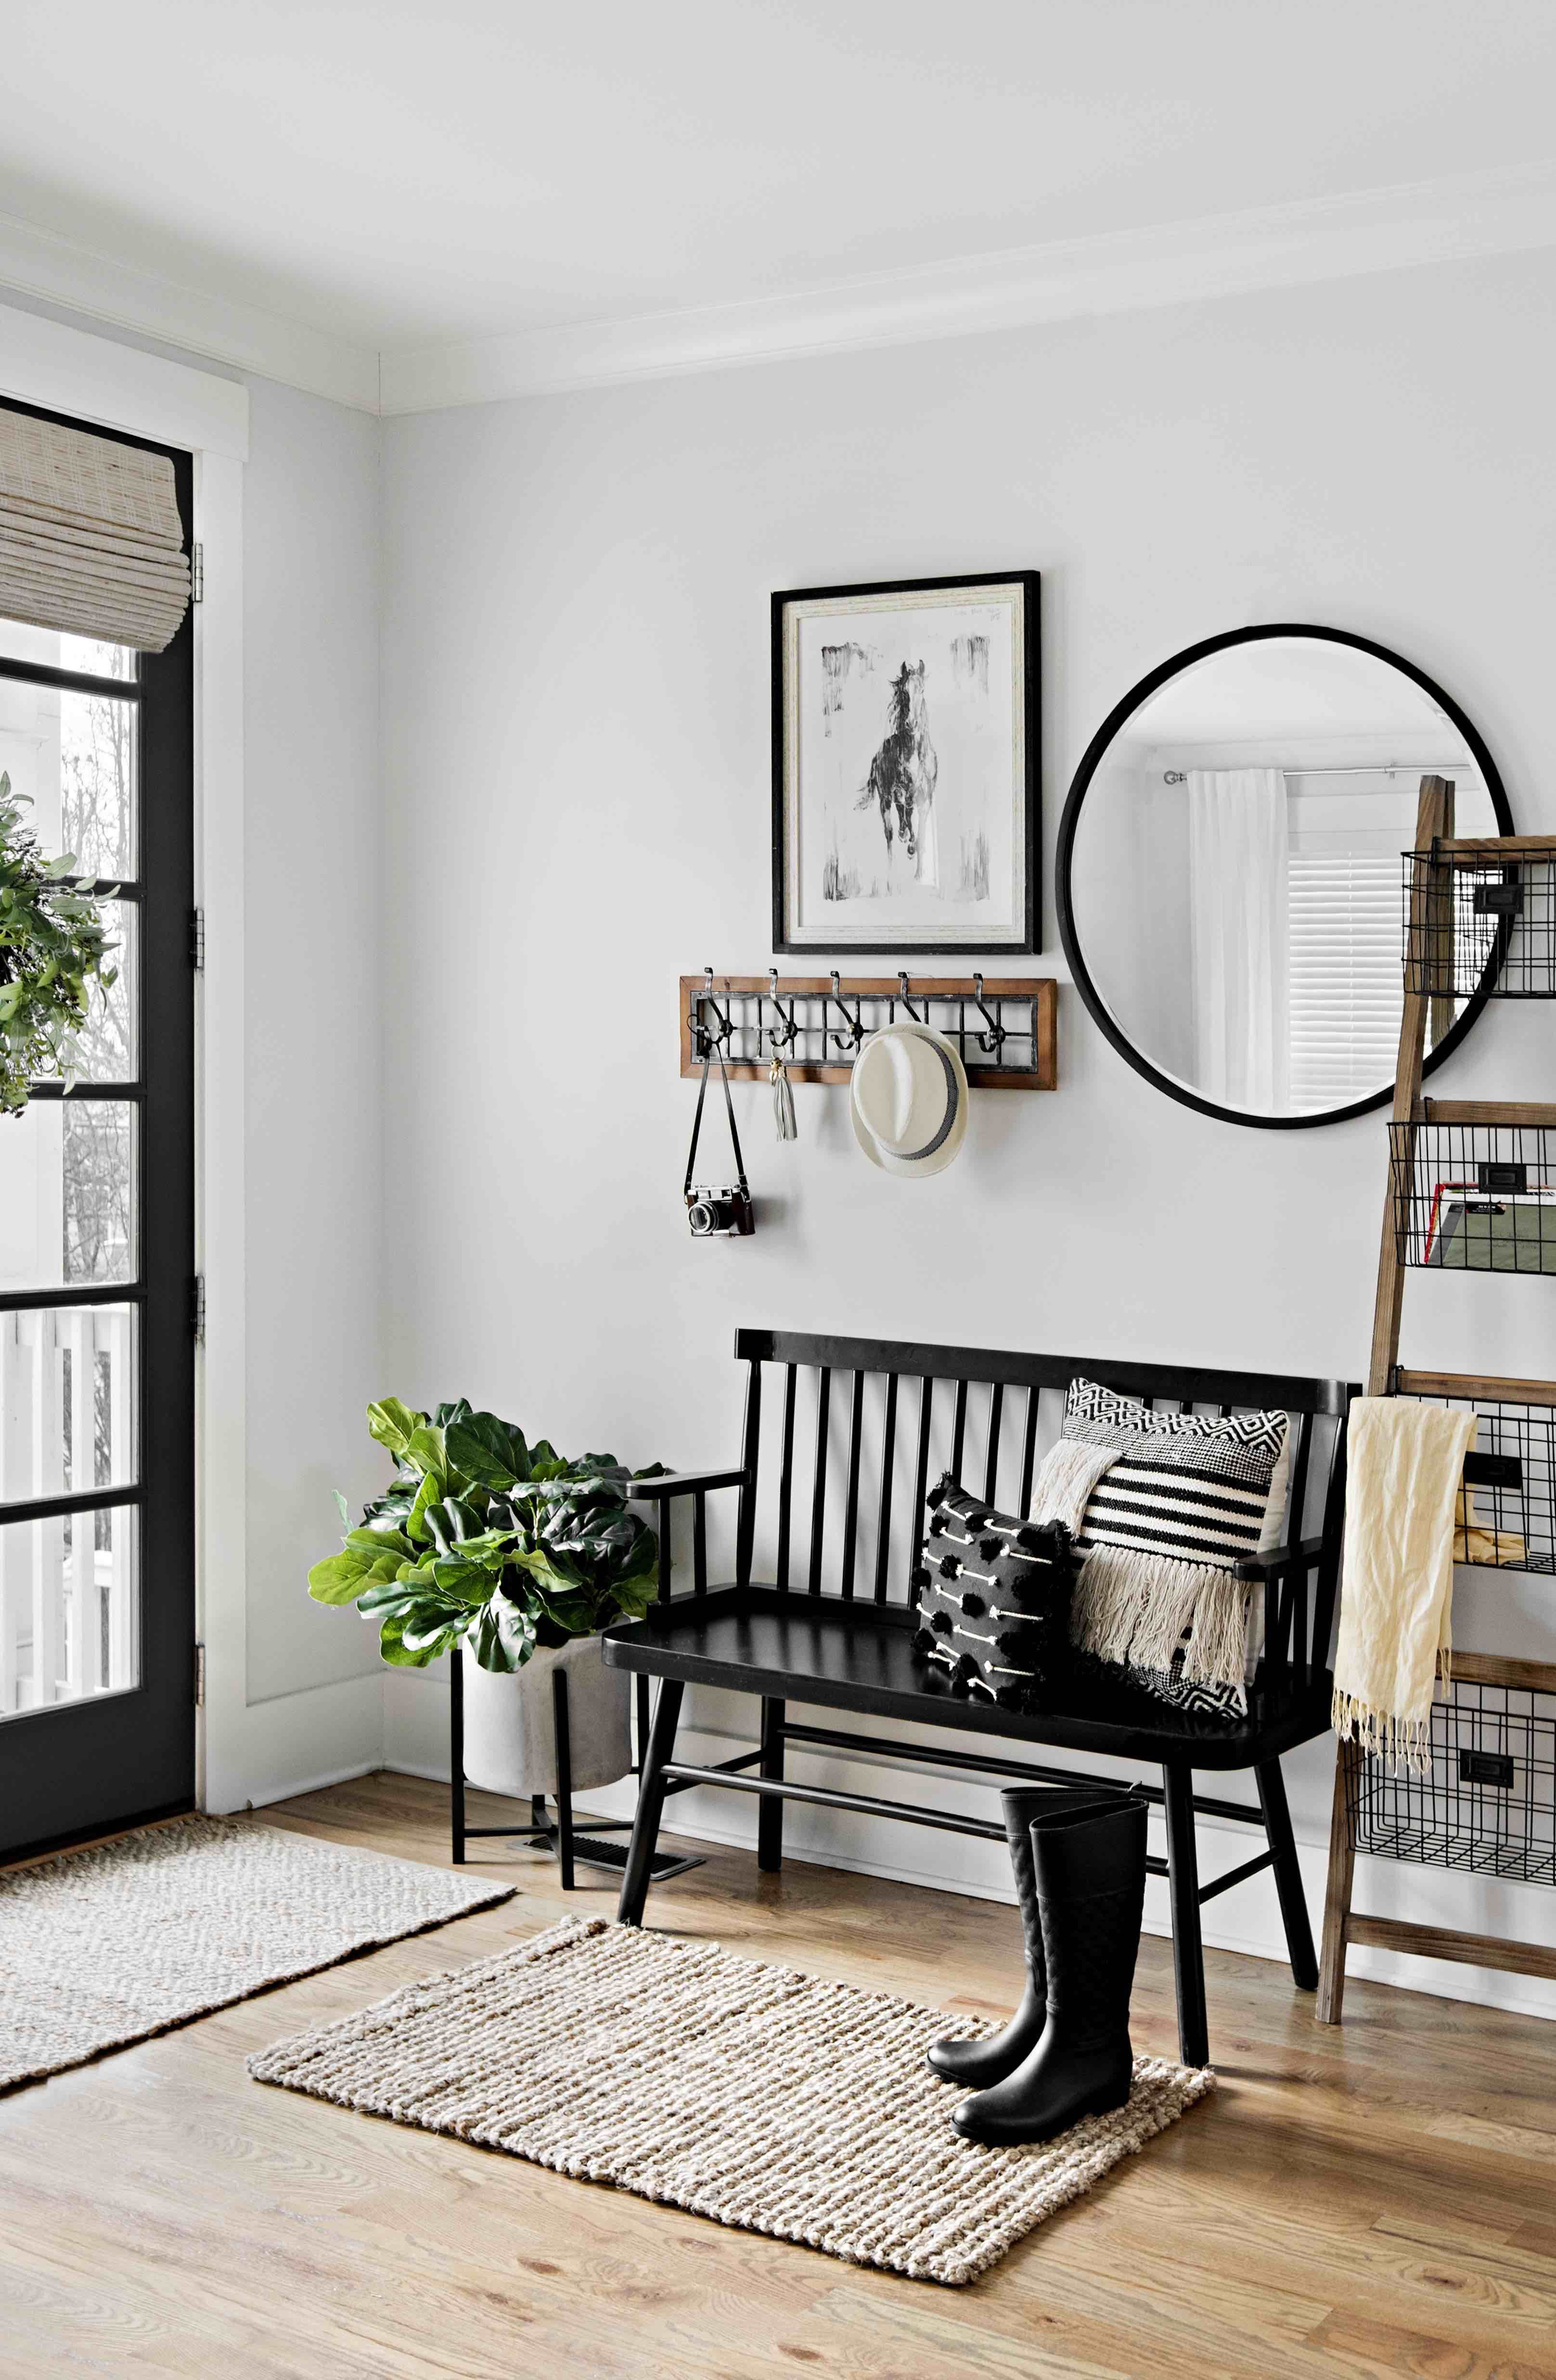 59 Entryway Bench Ideas 2020 (Useful and Beautiful)